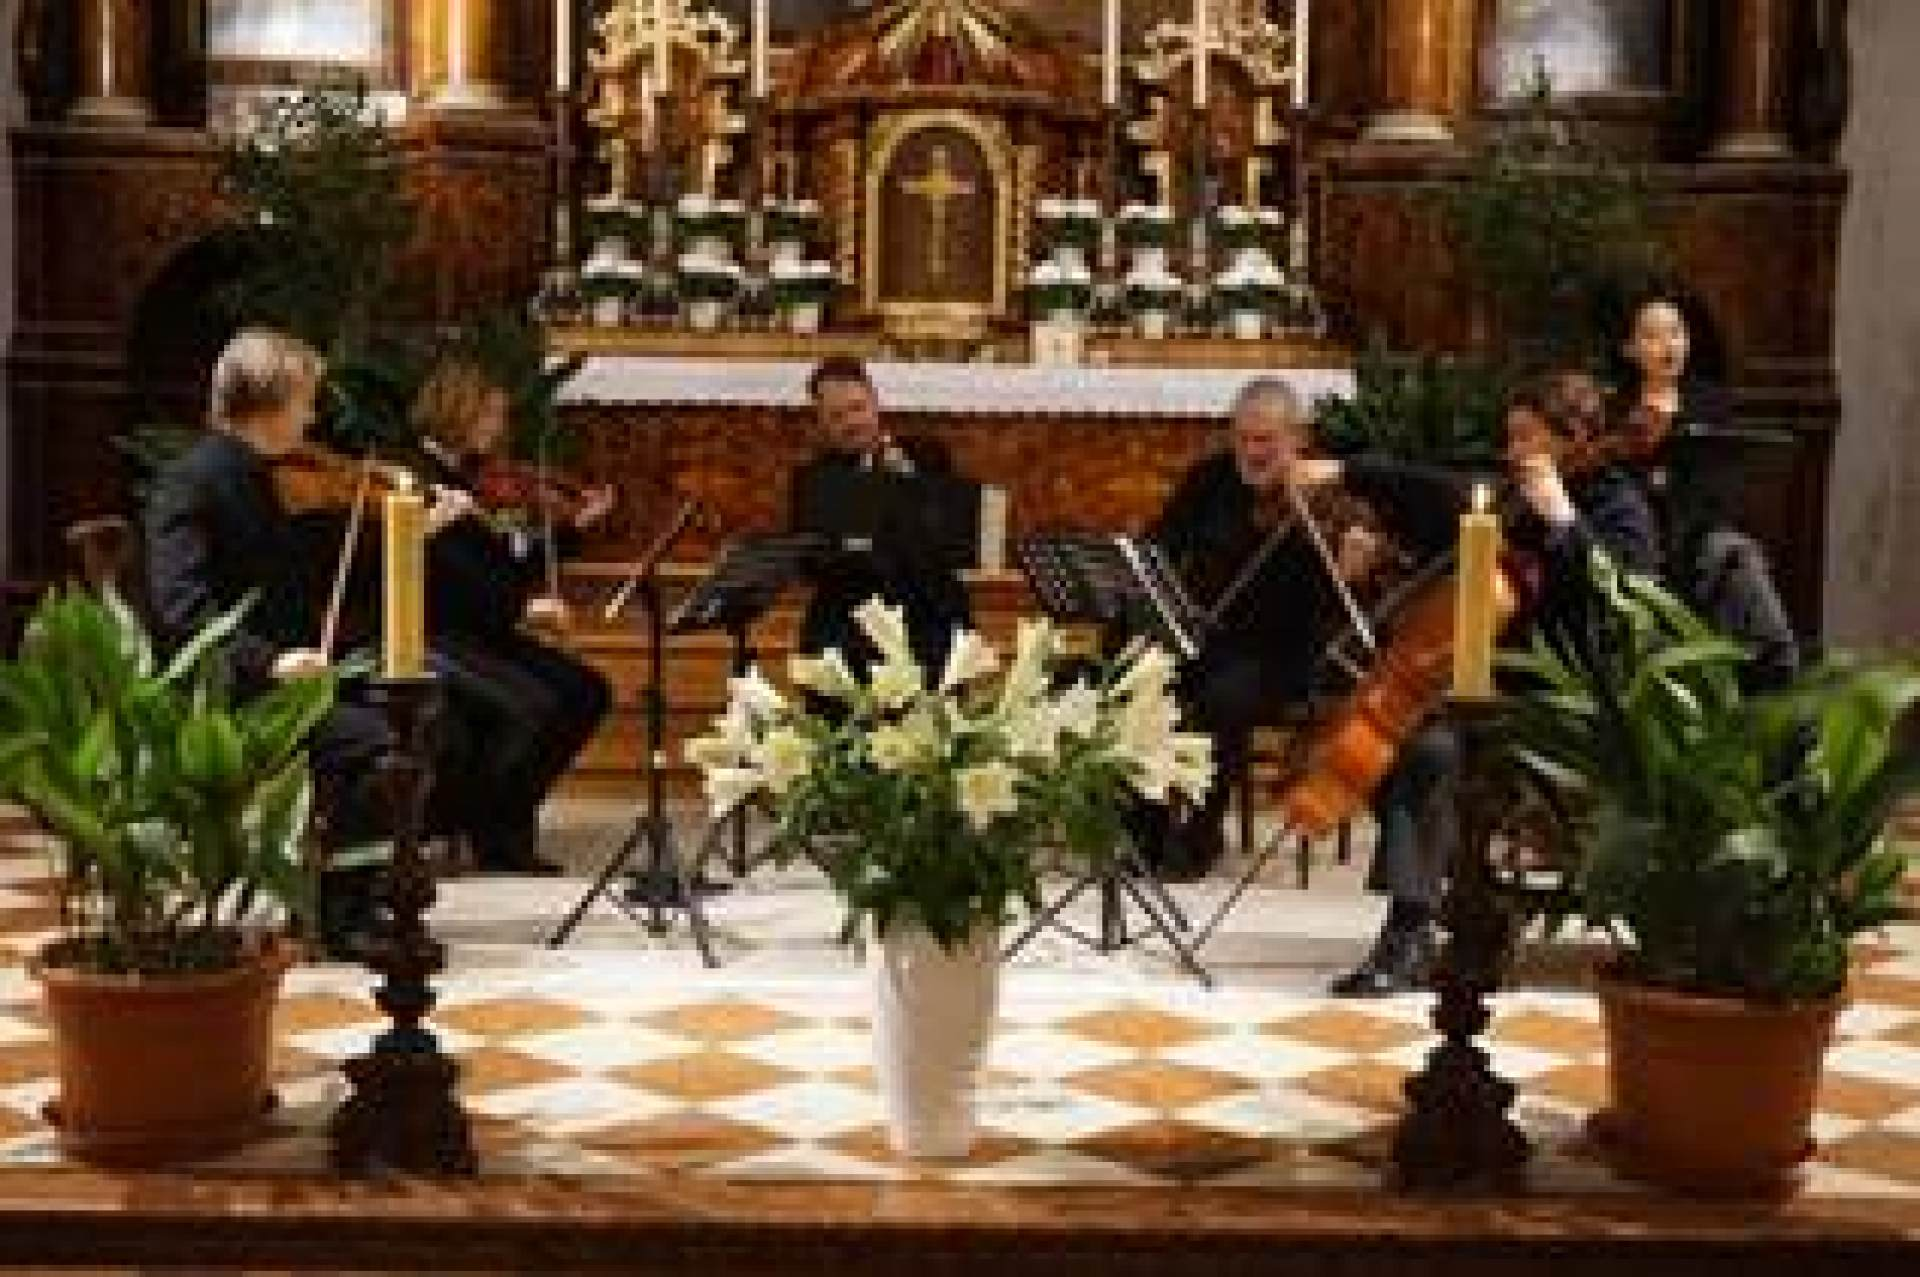 Ringing Advent in the Capuchin Church